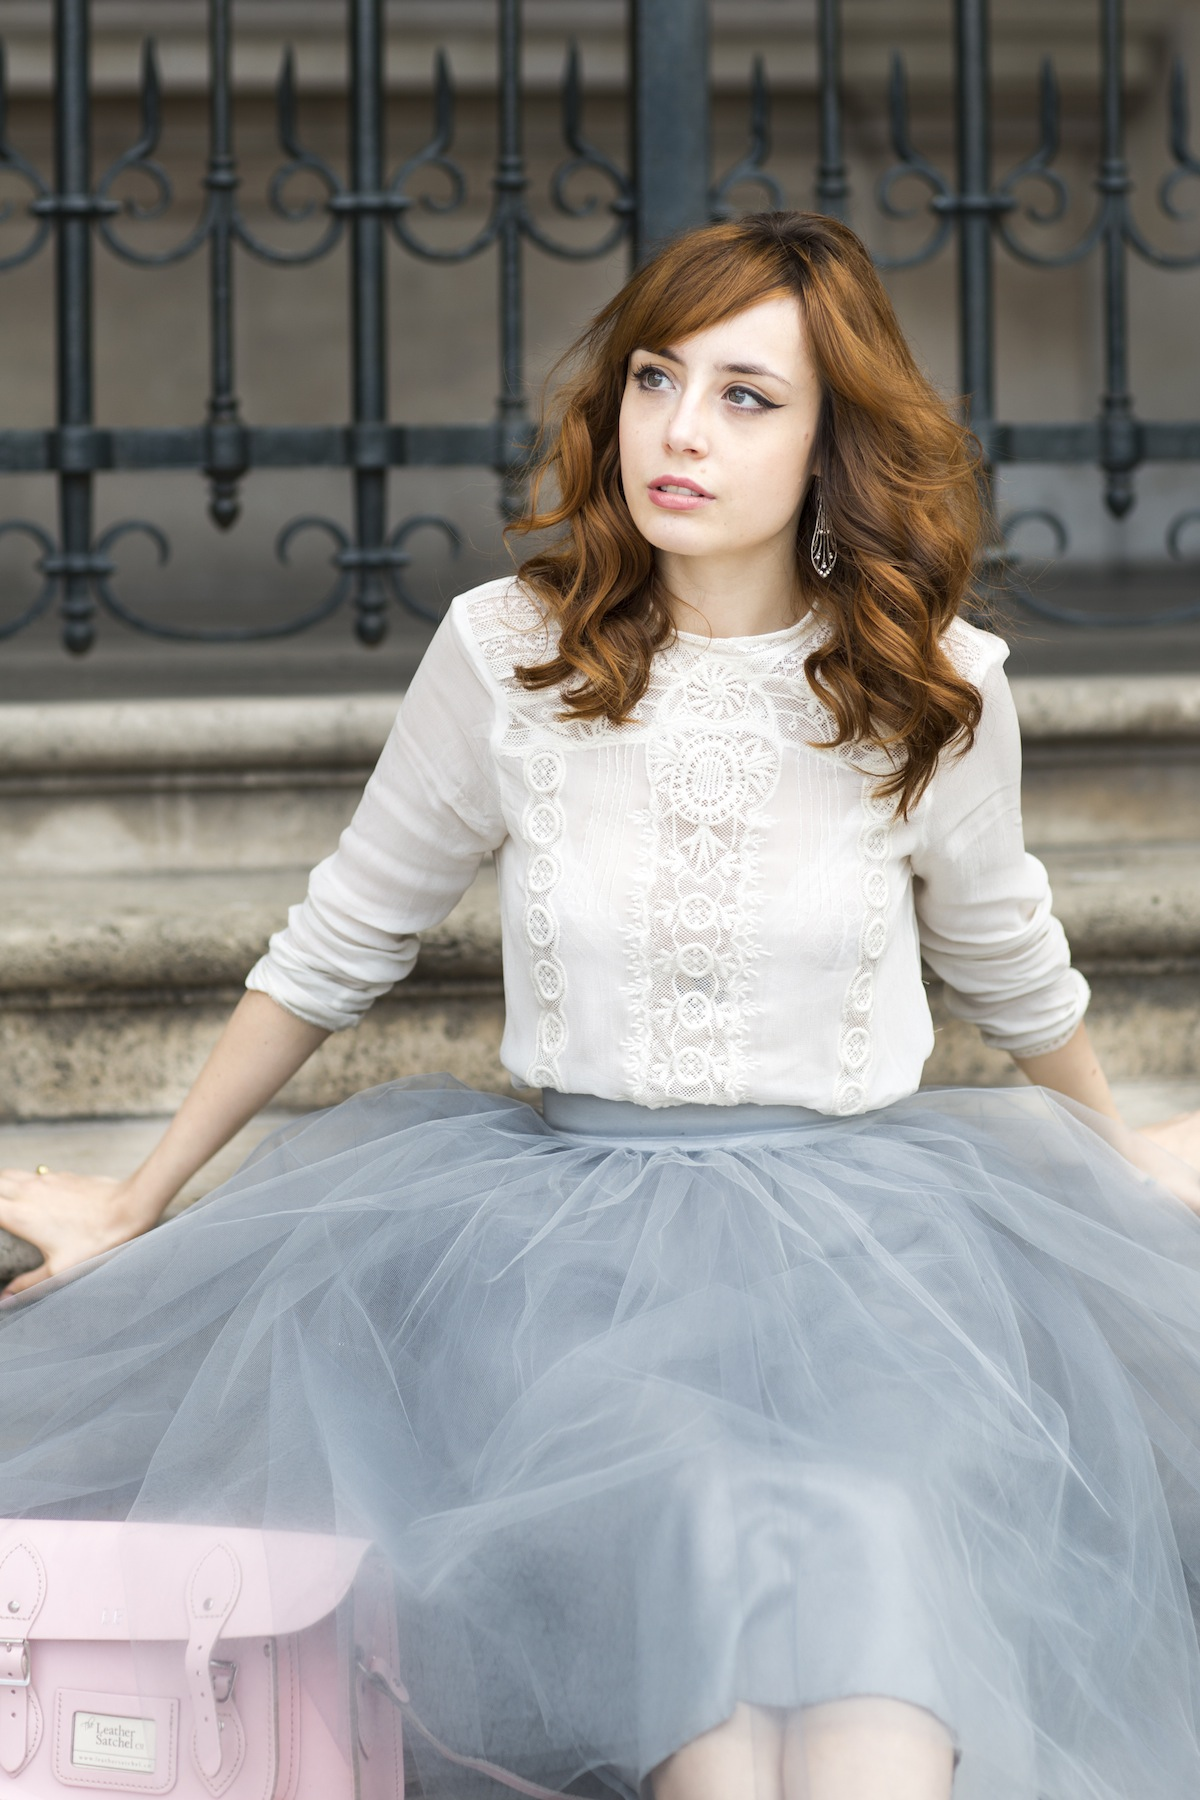 8bf0c2eb4 Louise Ebel is wearing a white lace crochet shirt from Zara, pale blue tulle  skirt